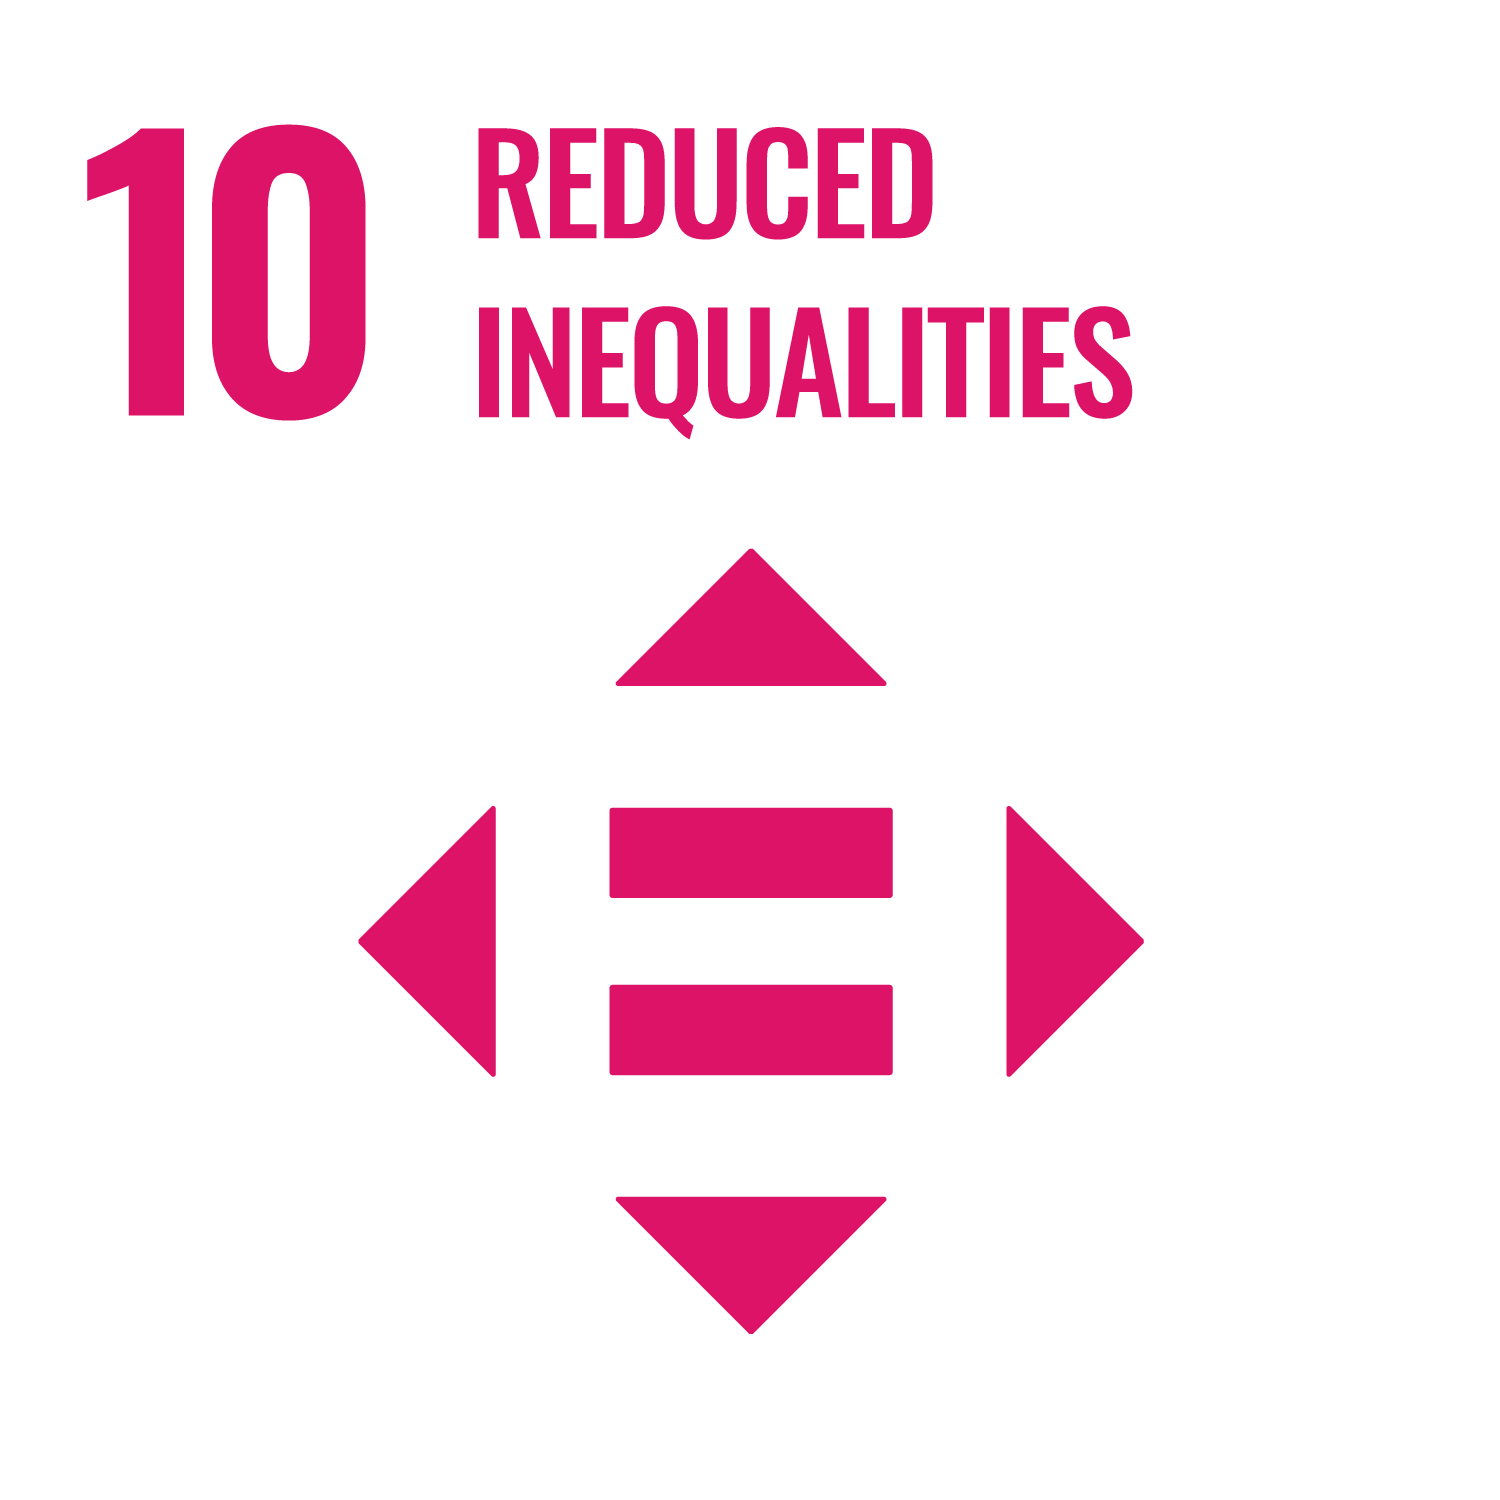 Reduced inequalities - Goal 10